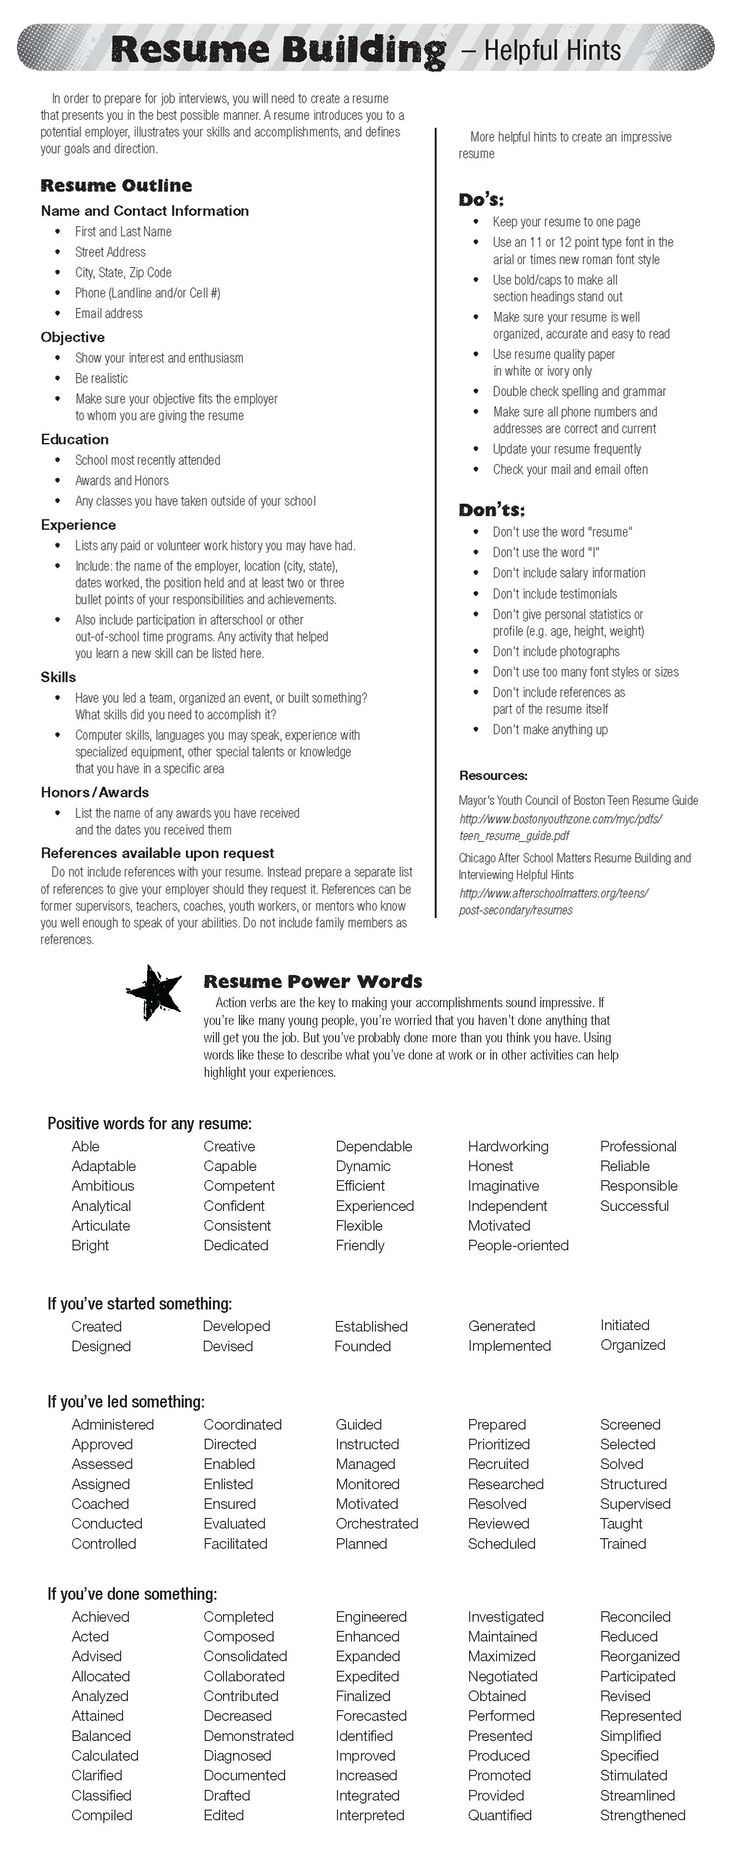 Opposenewapstandardsus  Splendid  Ideas About Resume On Pinterest  Cv Format Resume Cv And  With Glamorous  Ideas About Resume On Pinterest  Cv Format Resume Cv And Resume Templates With Amusing Server Job Resume Also Job Resumes Templates In Addition Resume Outlines Free And First Resume No Work Experience As Well As Photographer Resume Sample Additionally Landscape Architect Resume From Pinterestcom With Opposenewapstandardsus  Glamorous  Ideas About Resume On Pinterest  Cv Format Resume Cv And  With Amusing  Ideas About Resume On Pinterest  Cv Format Resume Cv And Resume Templates And Splendid Server Job Resume Also Job Resumes Templates In Addition Resume Outlines Free From Pinterestcom